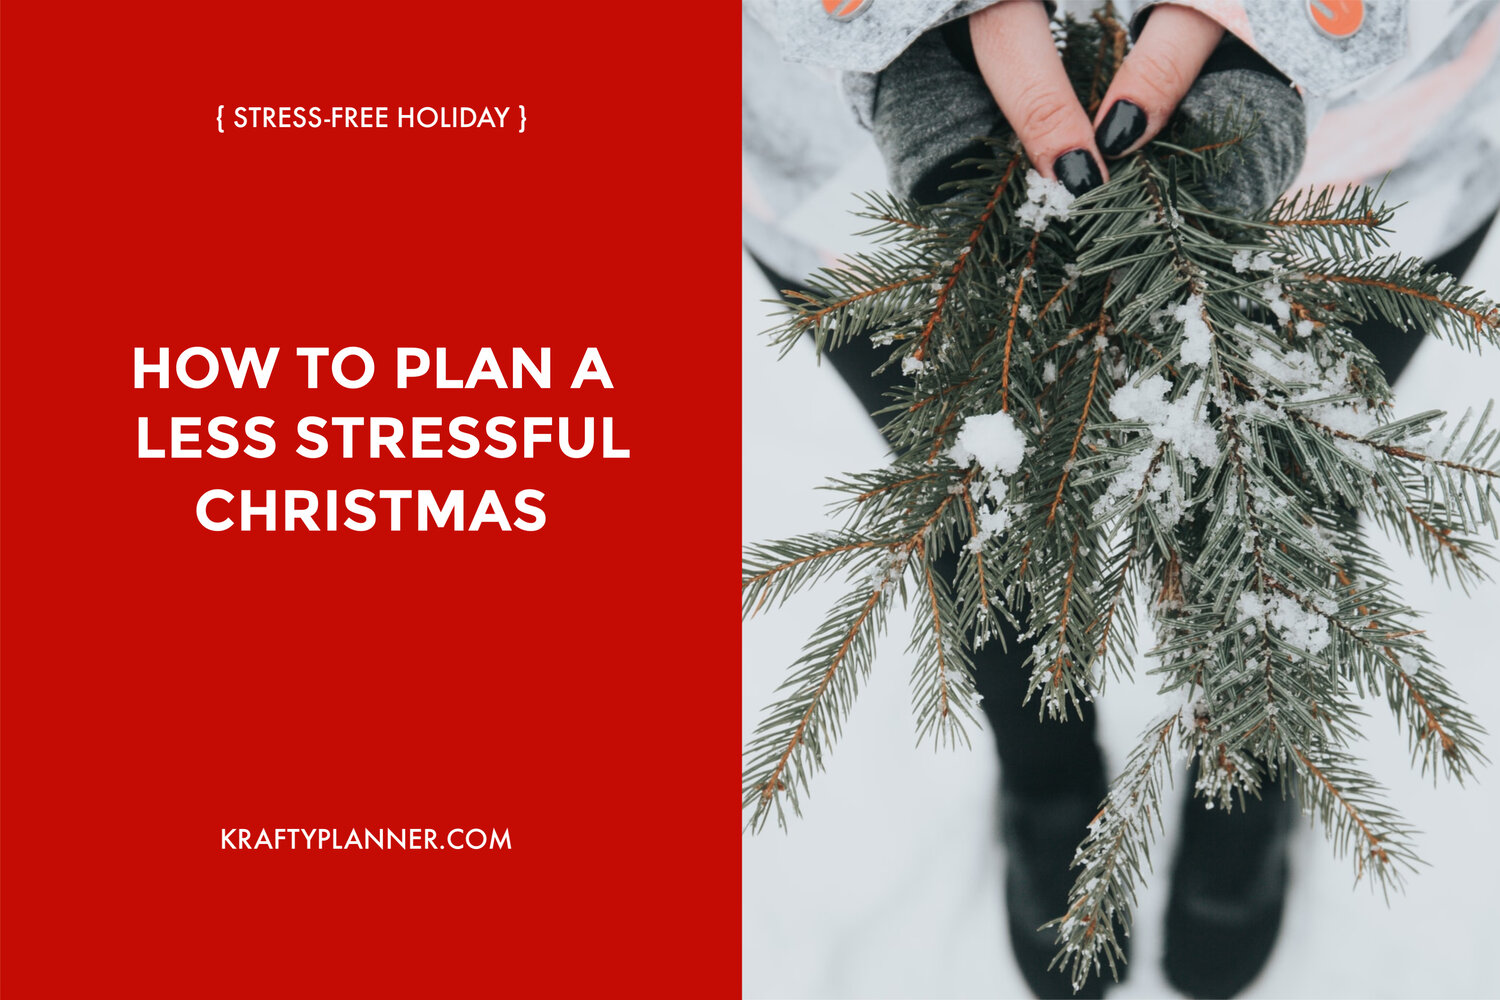 How to plan a less stressful Christmas.jpg